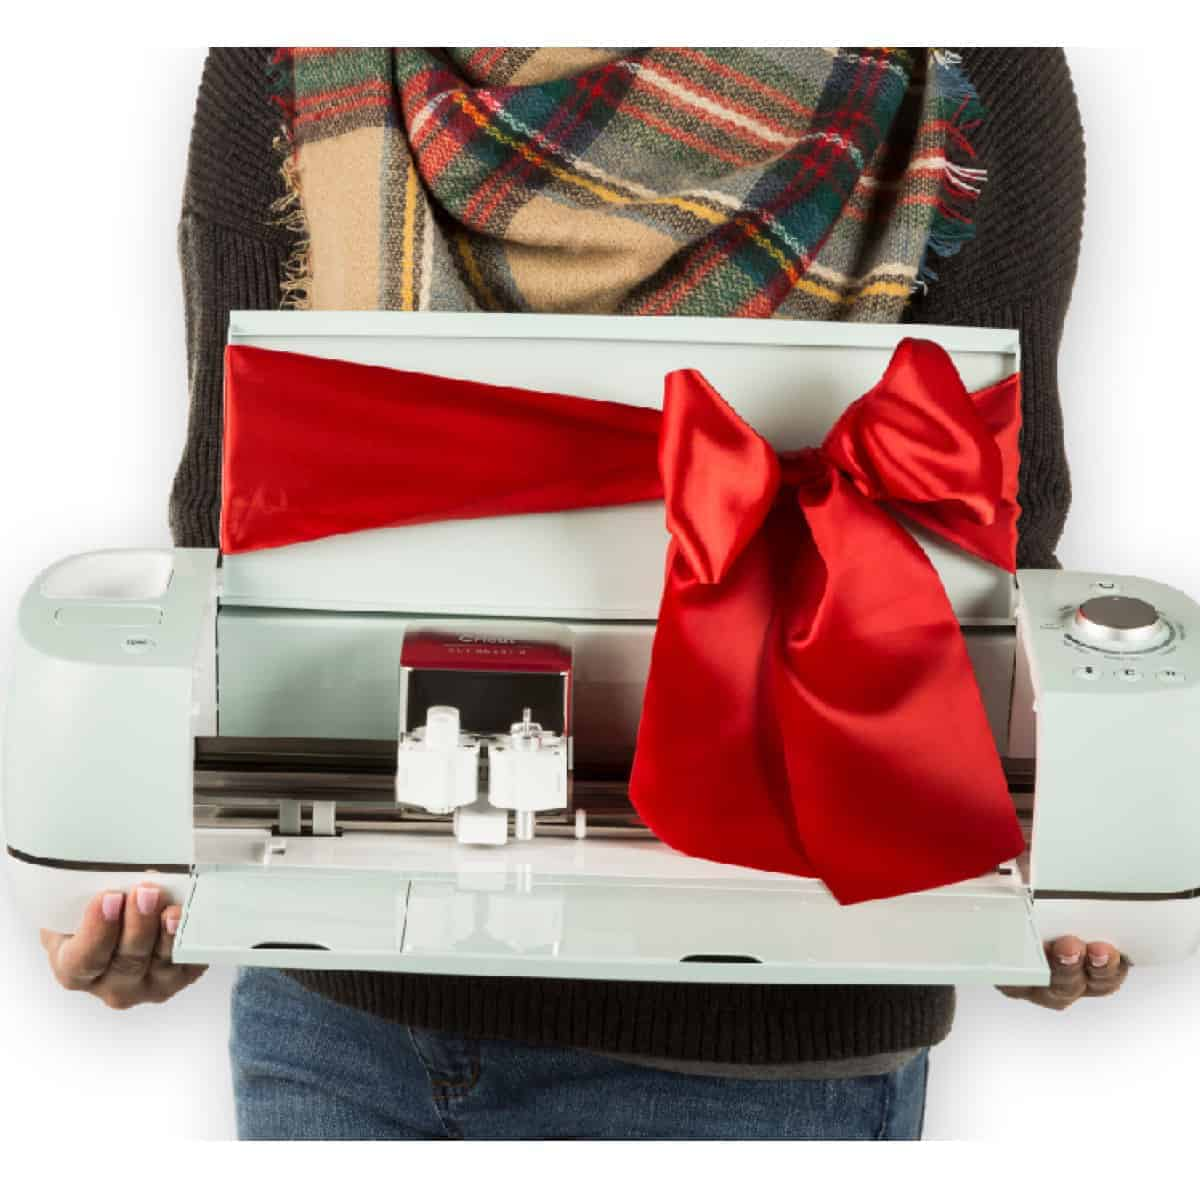 Woman in scarf holding a Mint green Cricut Explore air 2 with a red bow tied around it